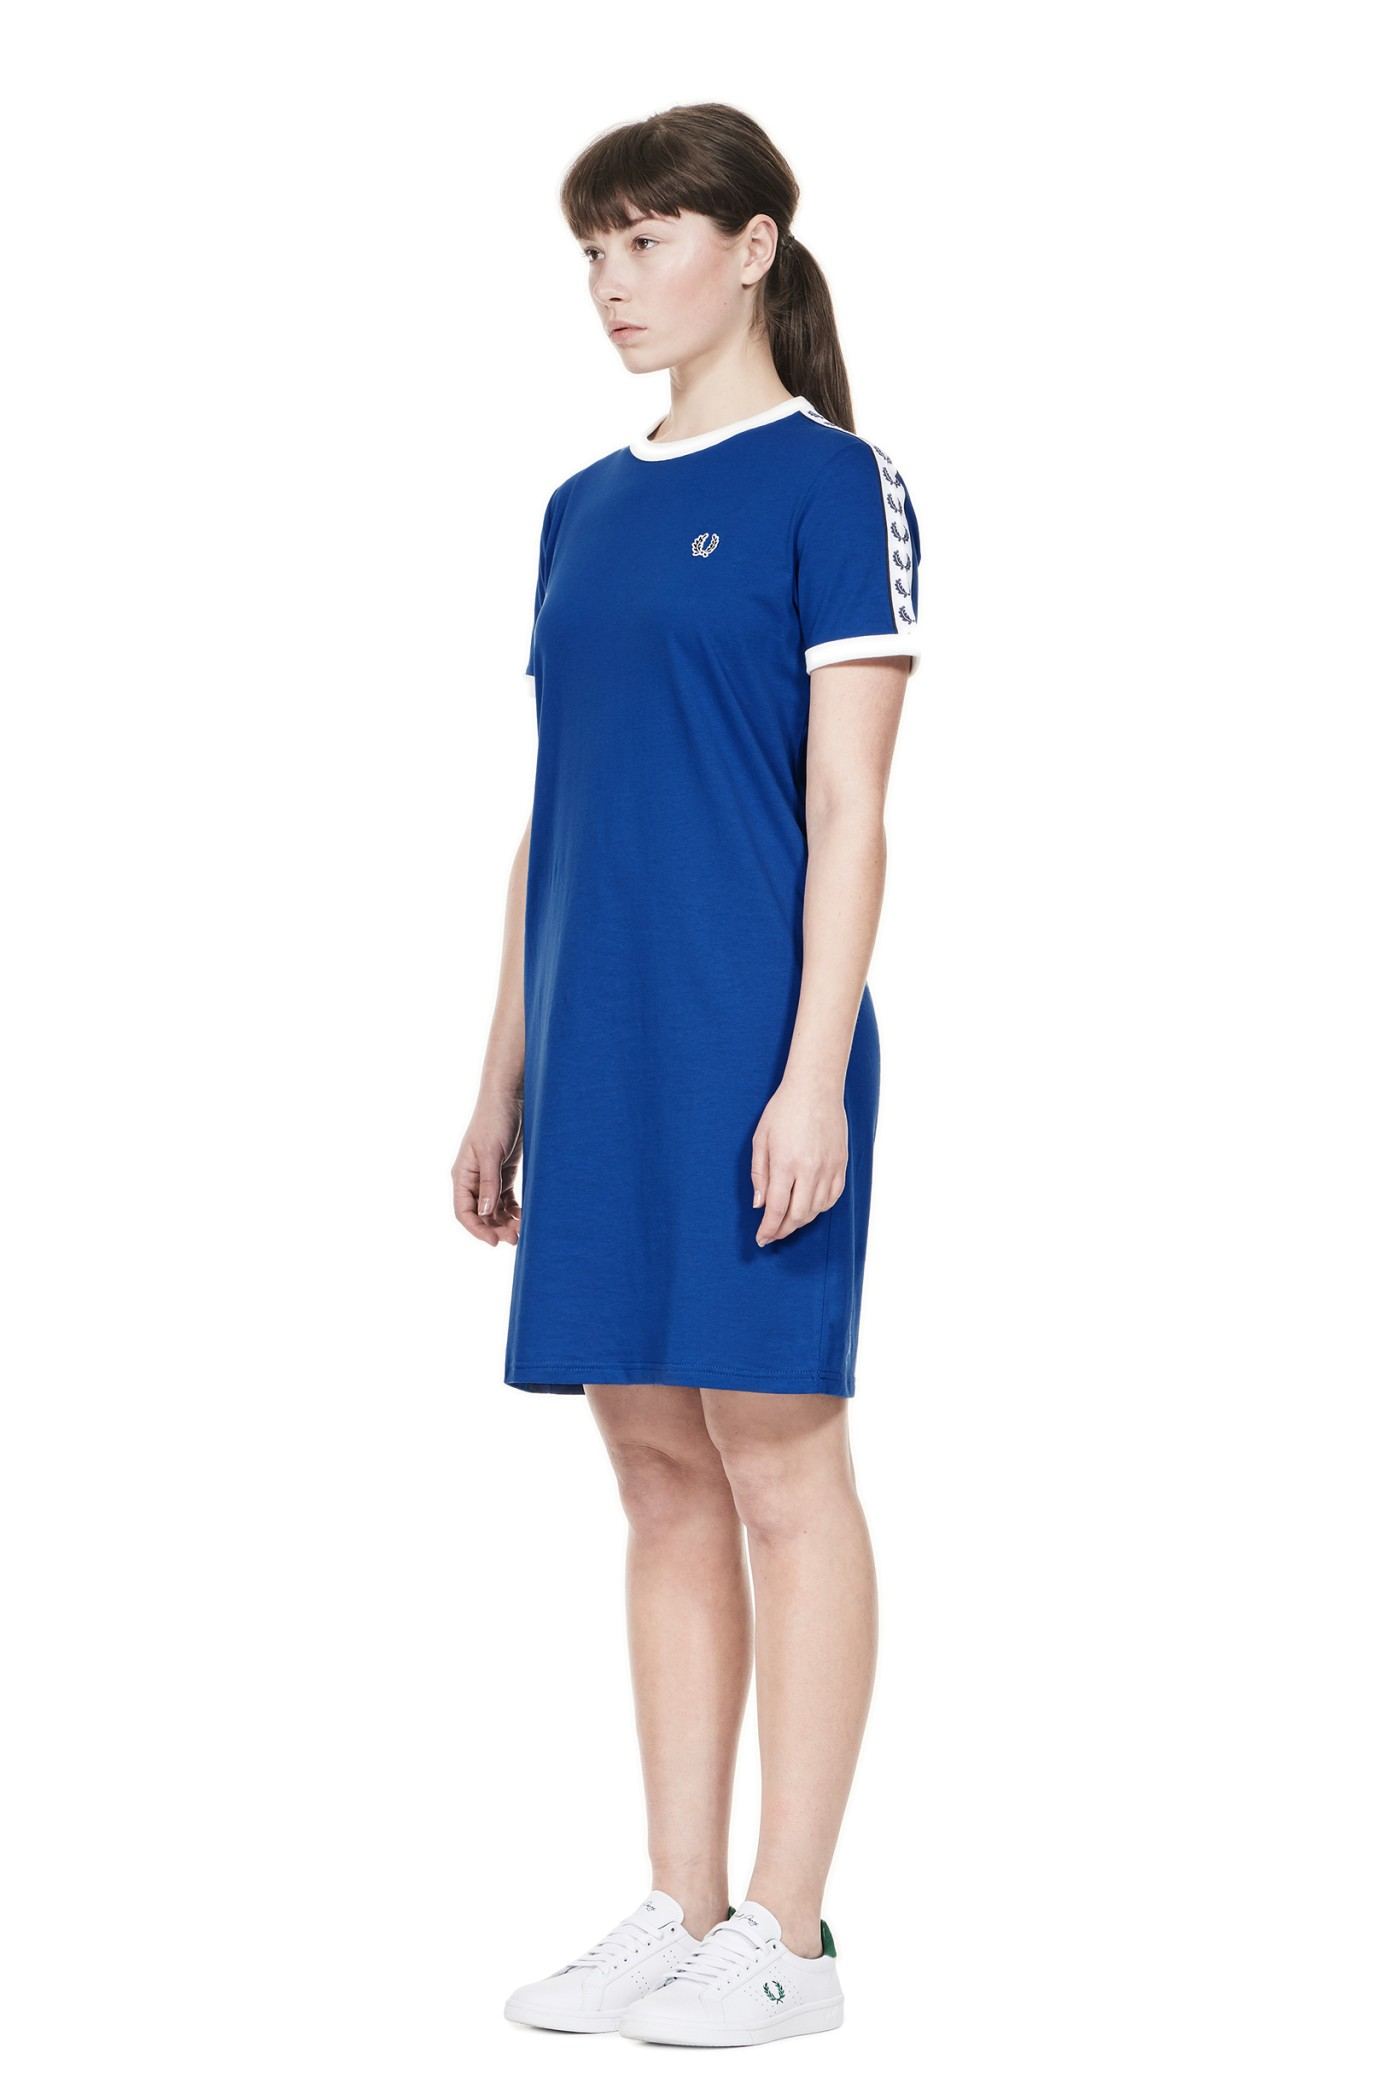 Fred perry sports authentic taped ringer t shirt dress regal for Sporty t shirt dress